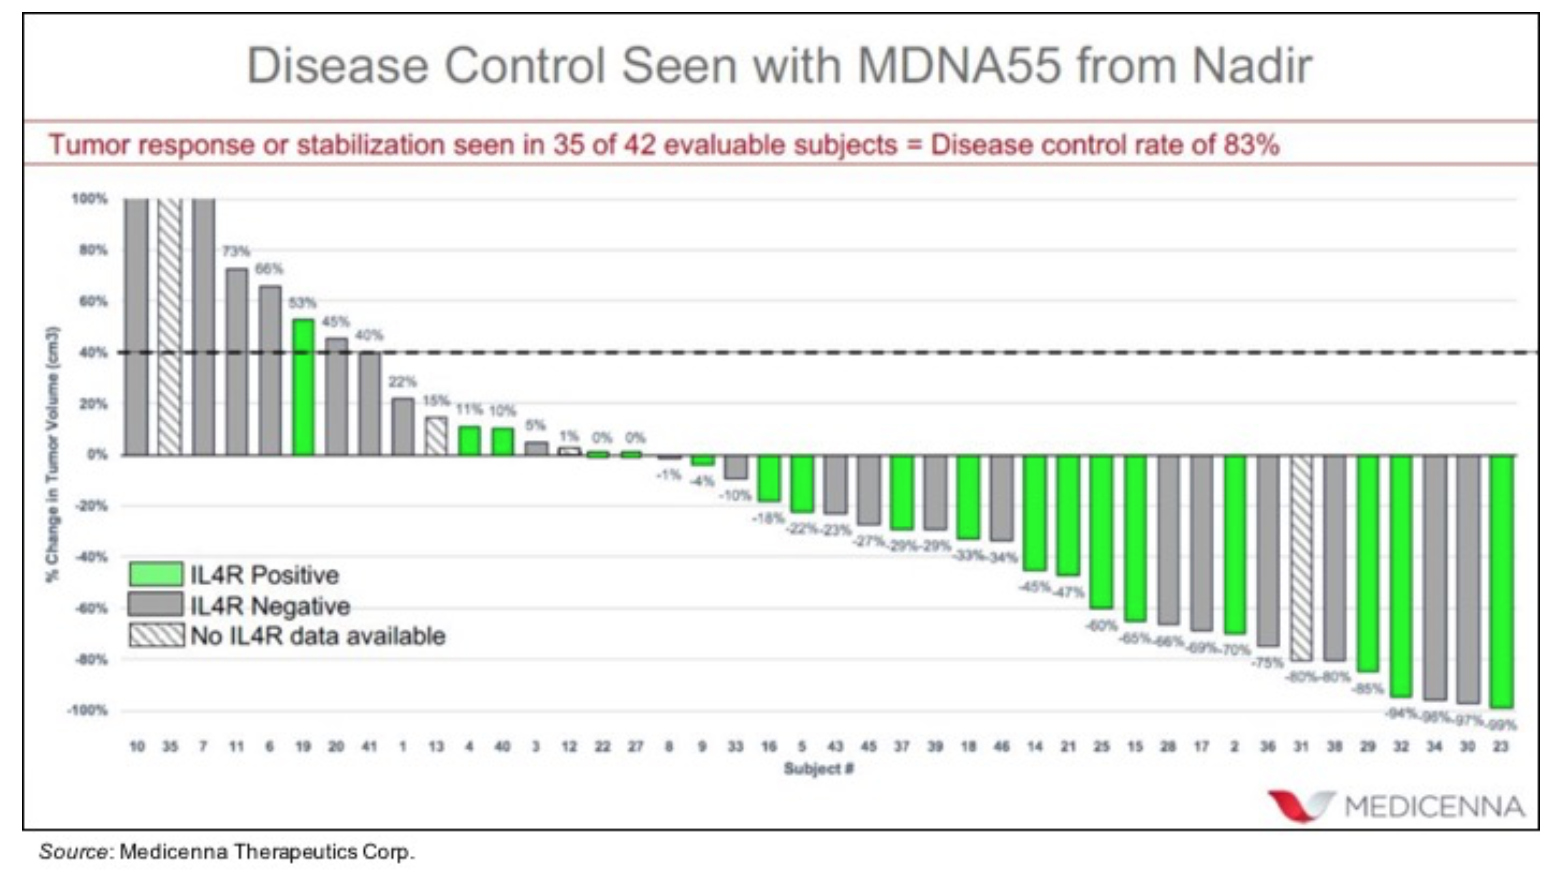 MDNA.TO: Meeting Soon with the FDA to Discuss Regulatory Path Forward for MDNA55…